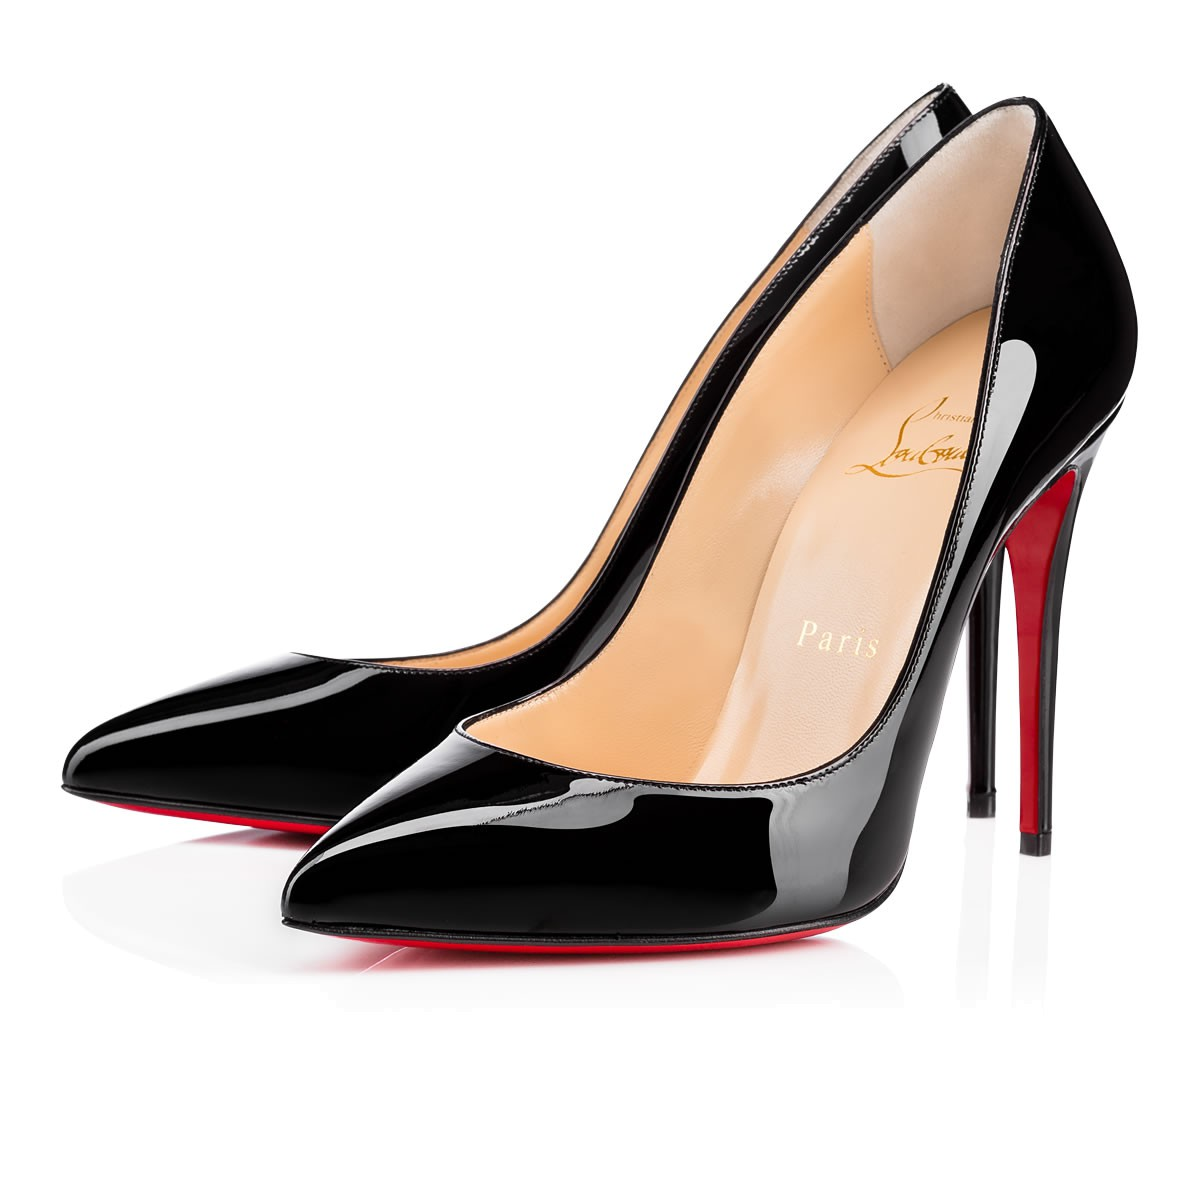 official photos 6b62a c494b Christian Louboutin Pigalle Follies 100 patent leather pumps